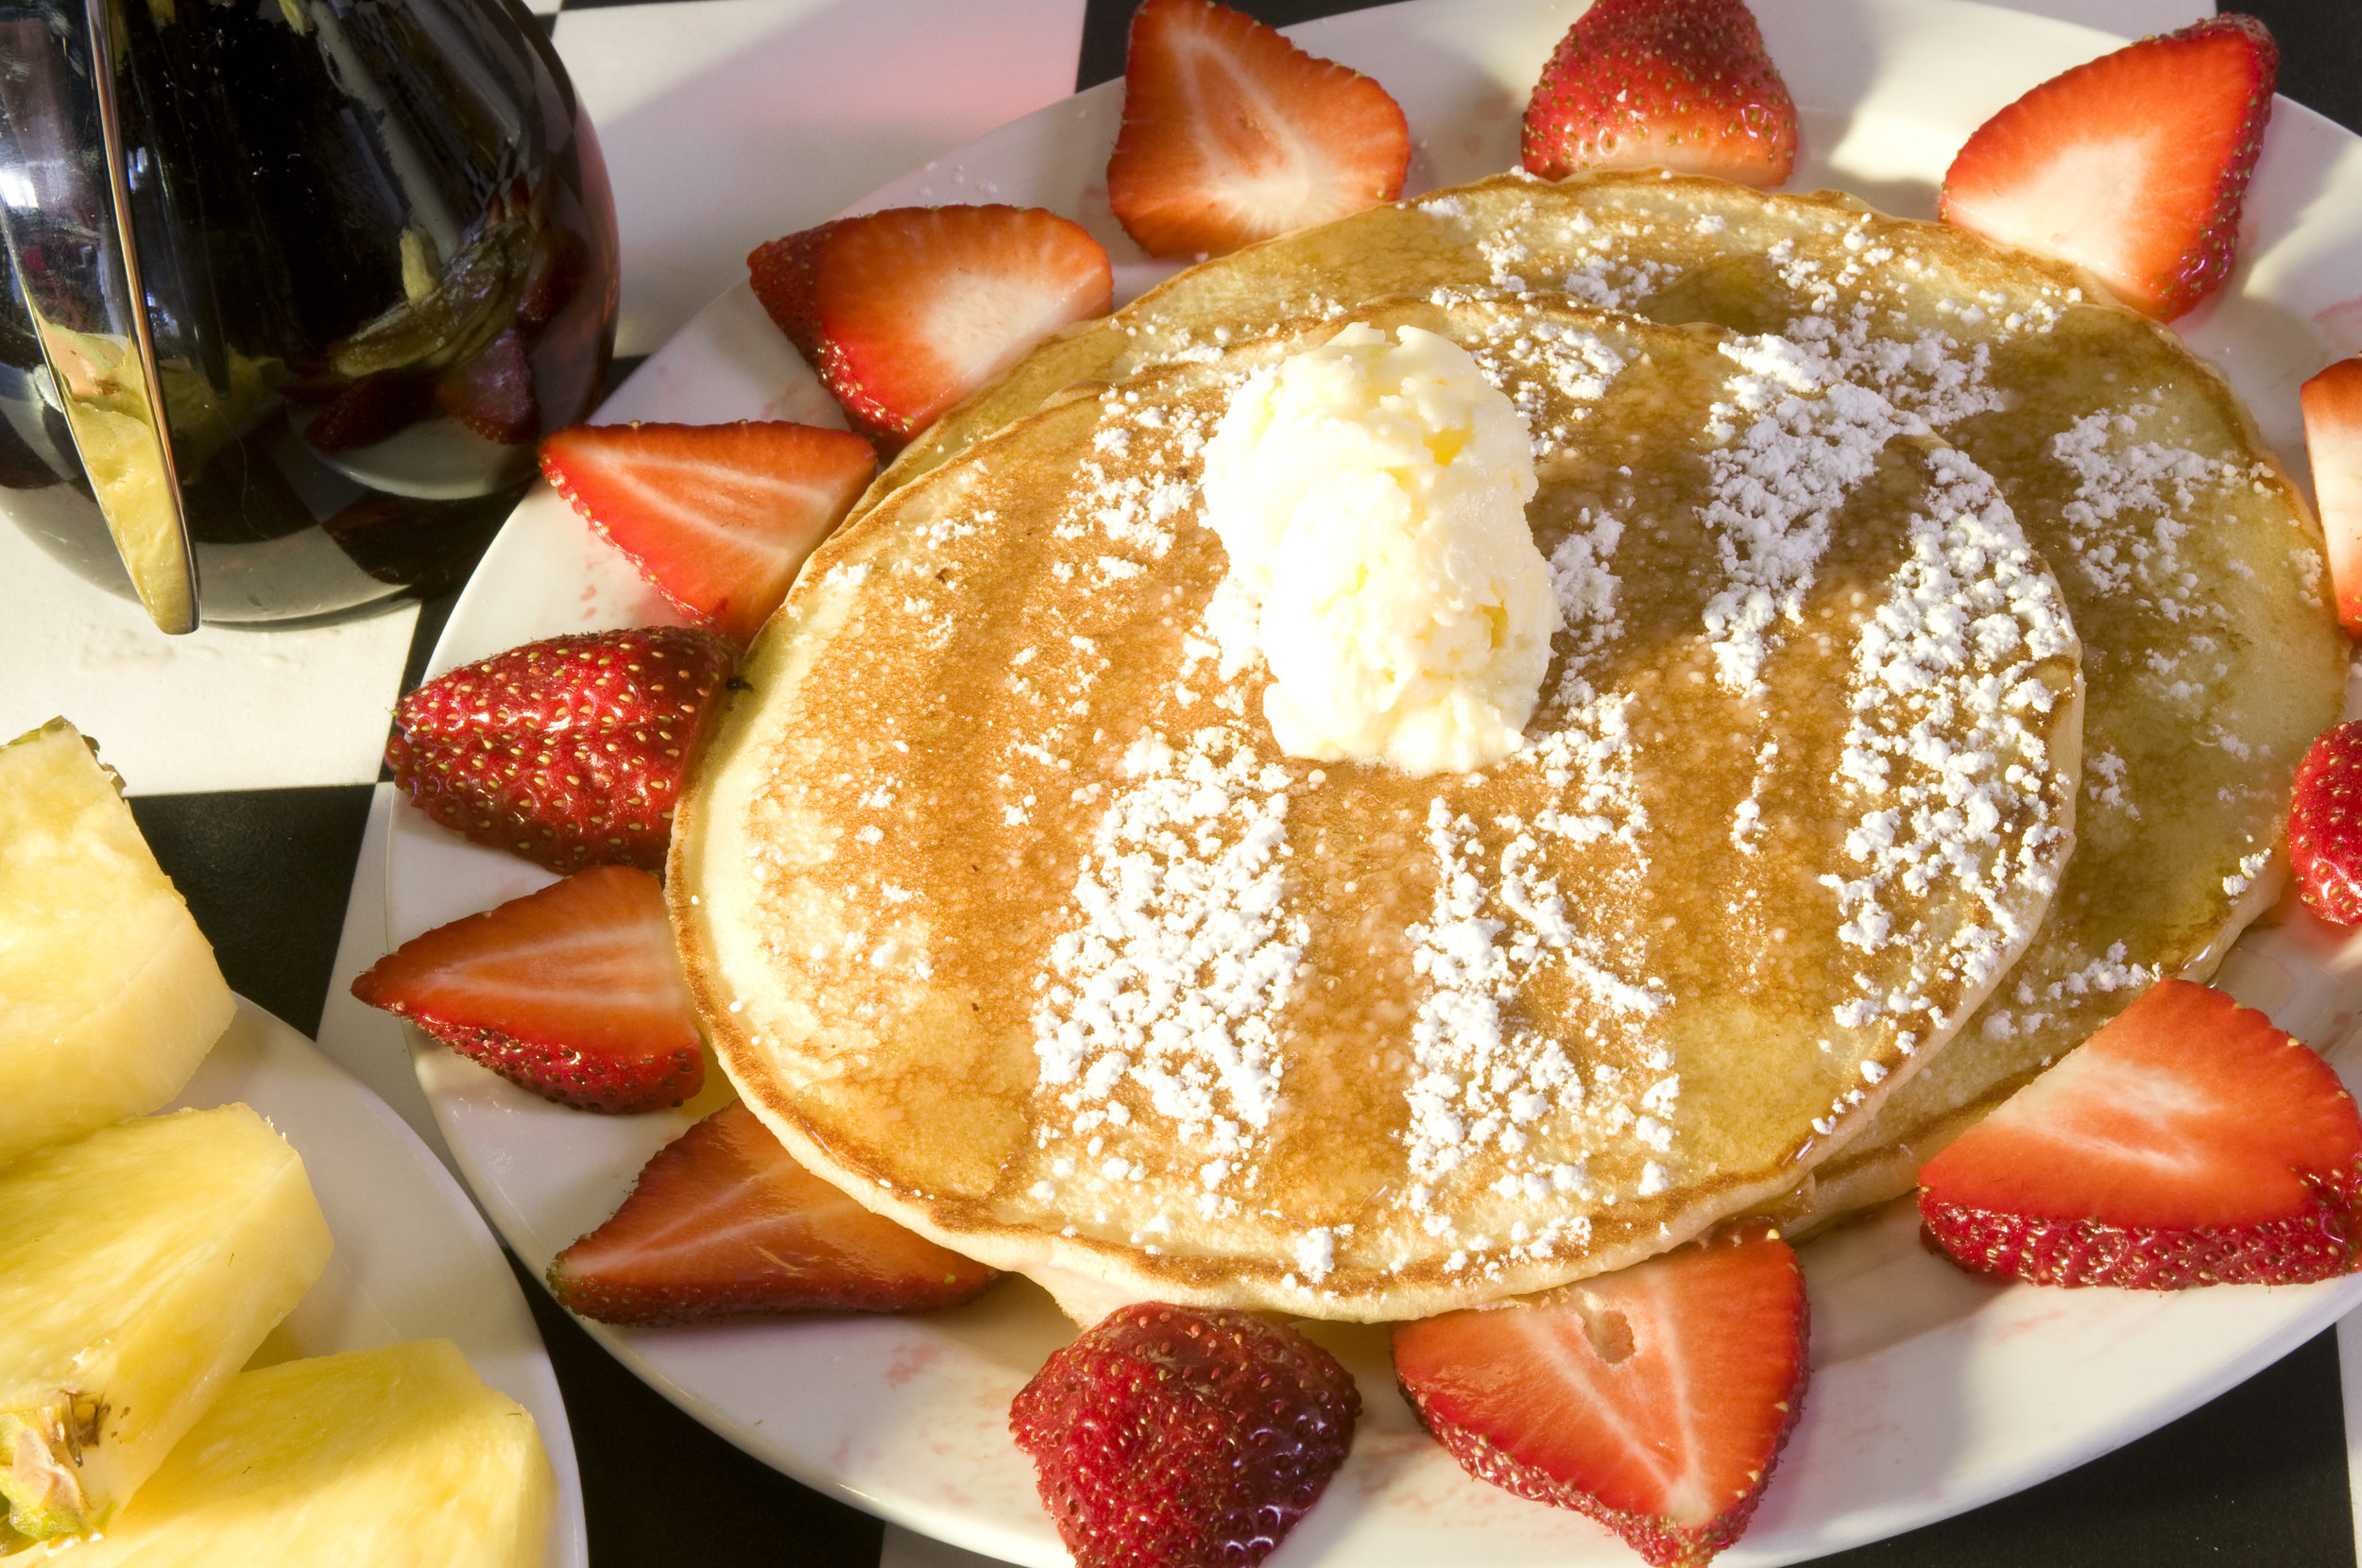 Plantation-cafe-and-Deli-Hilton-Head-Island-SC-Breakfast-03.jpg